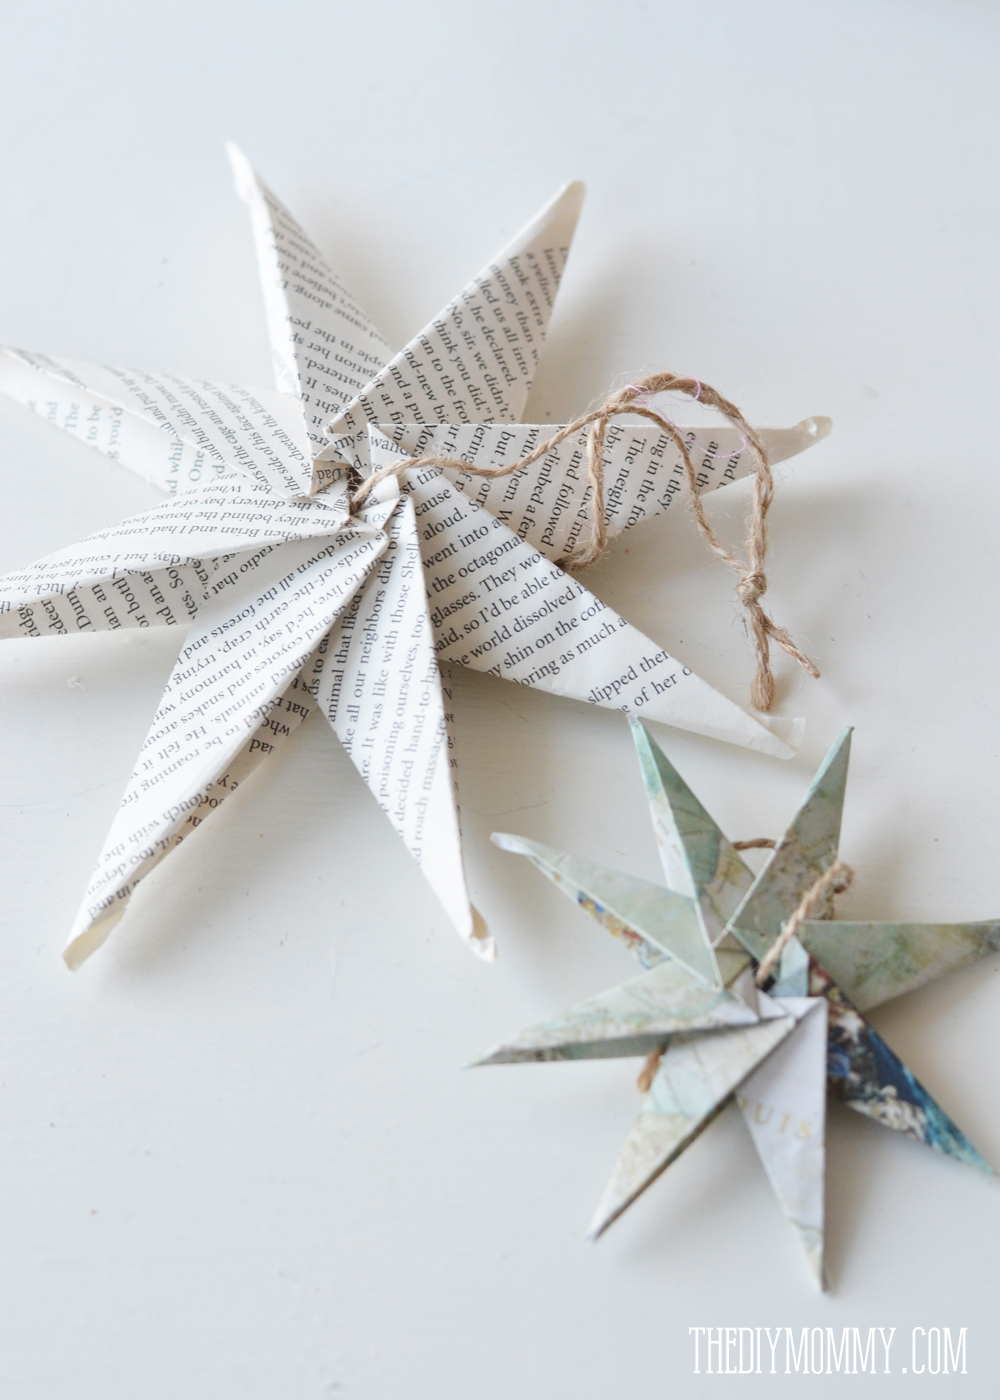 Diy christmas ornament book page or map paper star the diy mommy how to make an 8 pointed paper star from book pages or maps makes a jeuxipadfo Choice Image